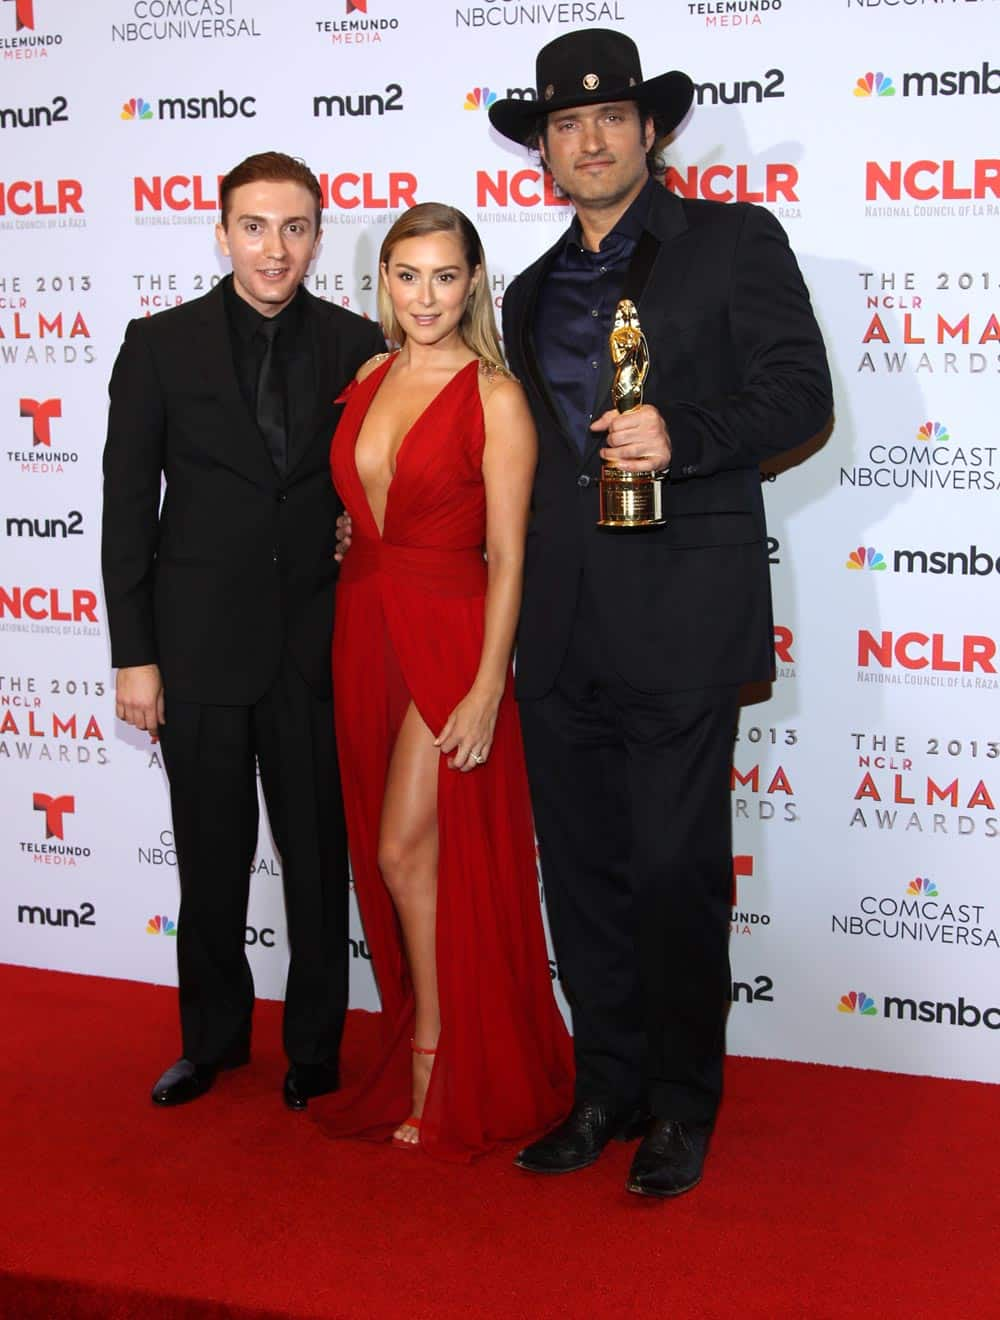 Daryl Sabara, Alexa Vega and winner of the Anthony Quinn award for achievement in film Robert Rodriguez pose backstage at the NCLR ALMA Awards at the Pasadena Civic Auditorium, in Pasadena.